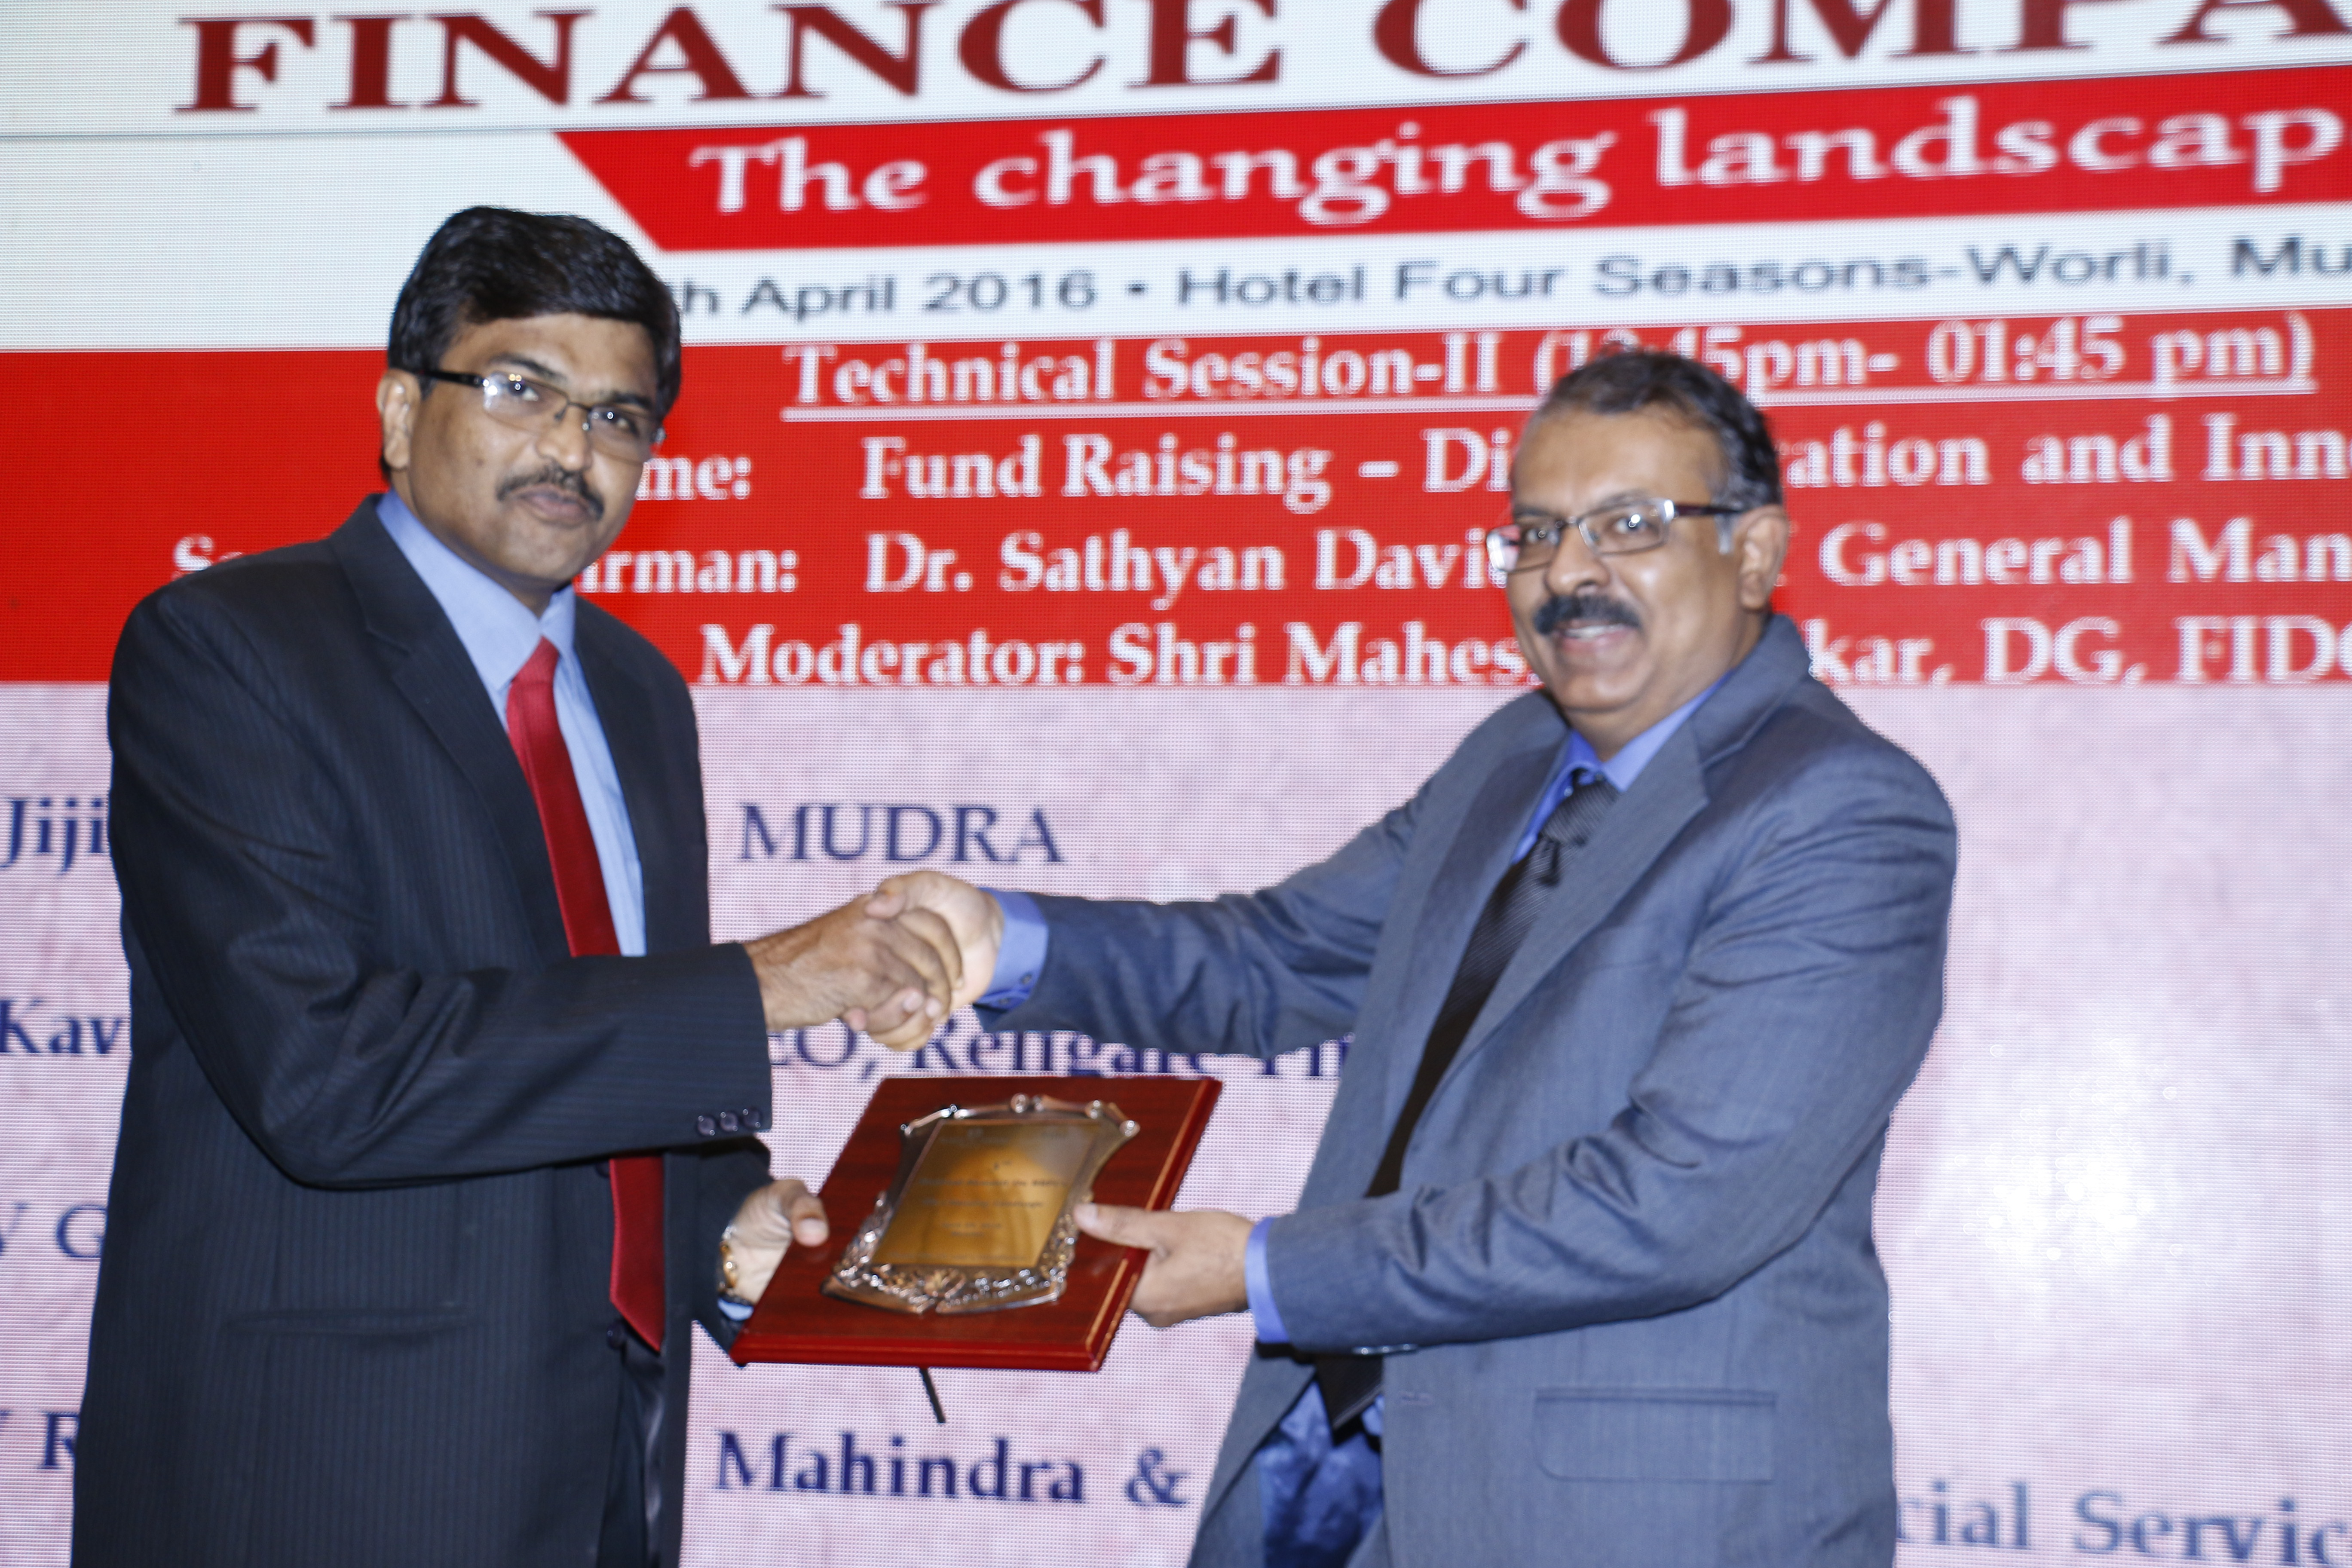 Jiji Mammen CEO, MUDRA receiving Momento at the National Summit on NBFCs